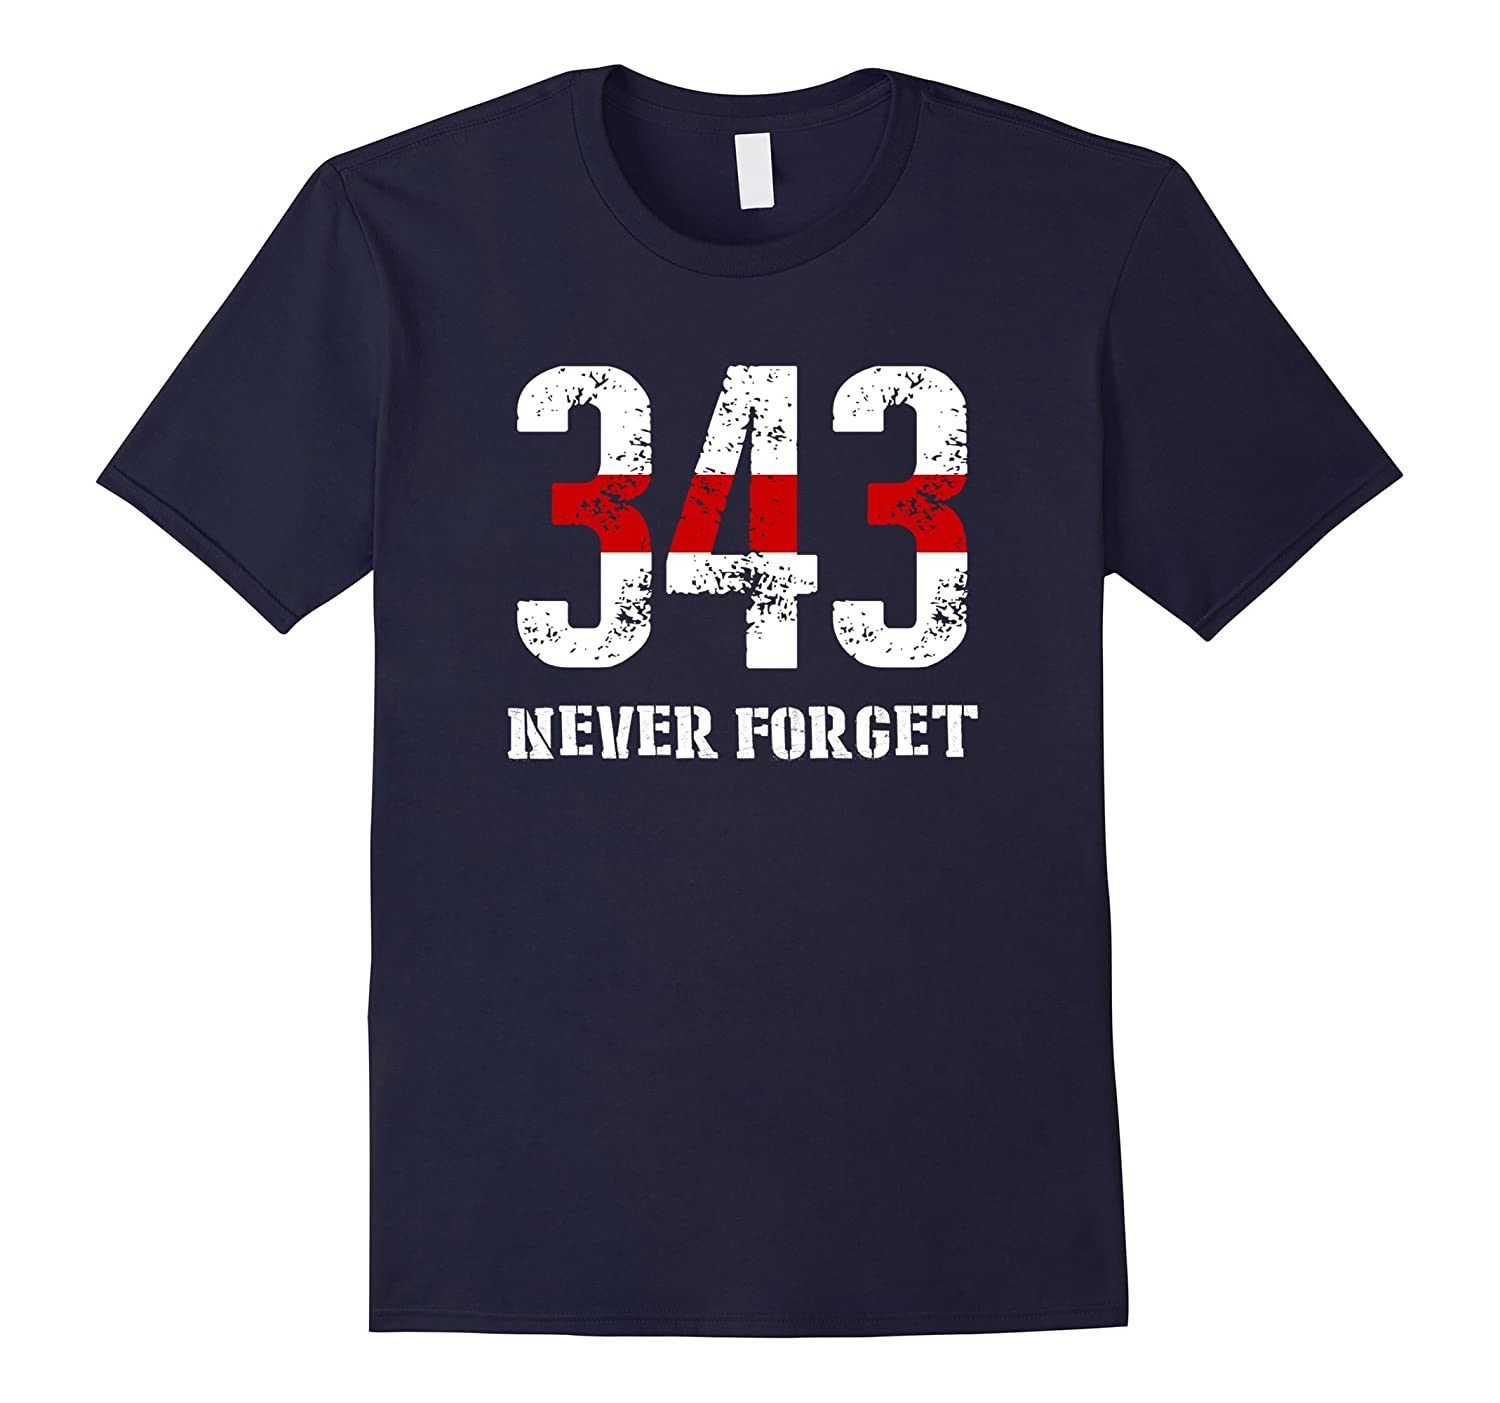 Firefighter Gifts 9-11 Memorial Never Forget Our Fallen-CD